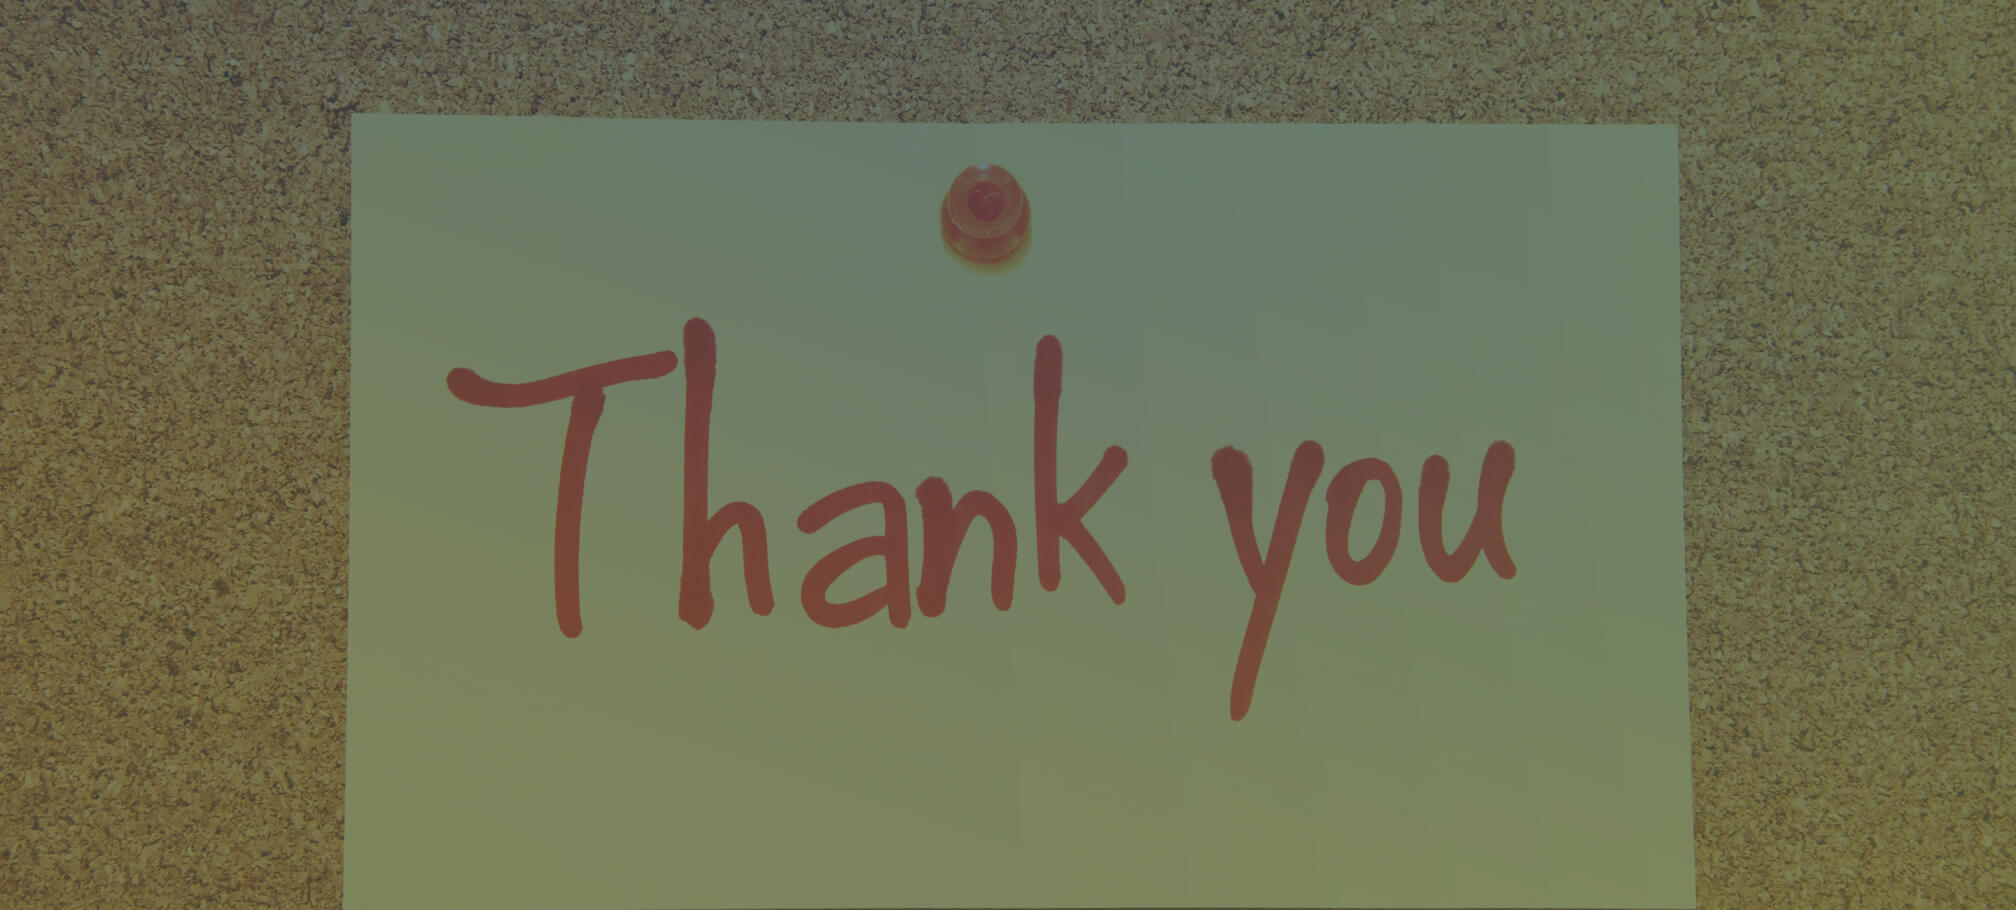 3 quick tips for small associations to show their thankfulness